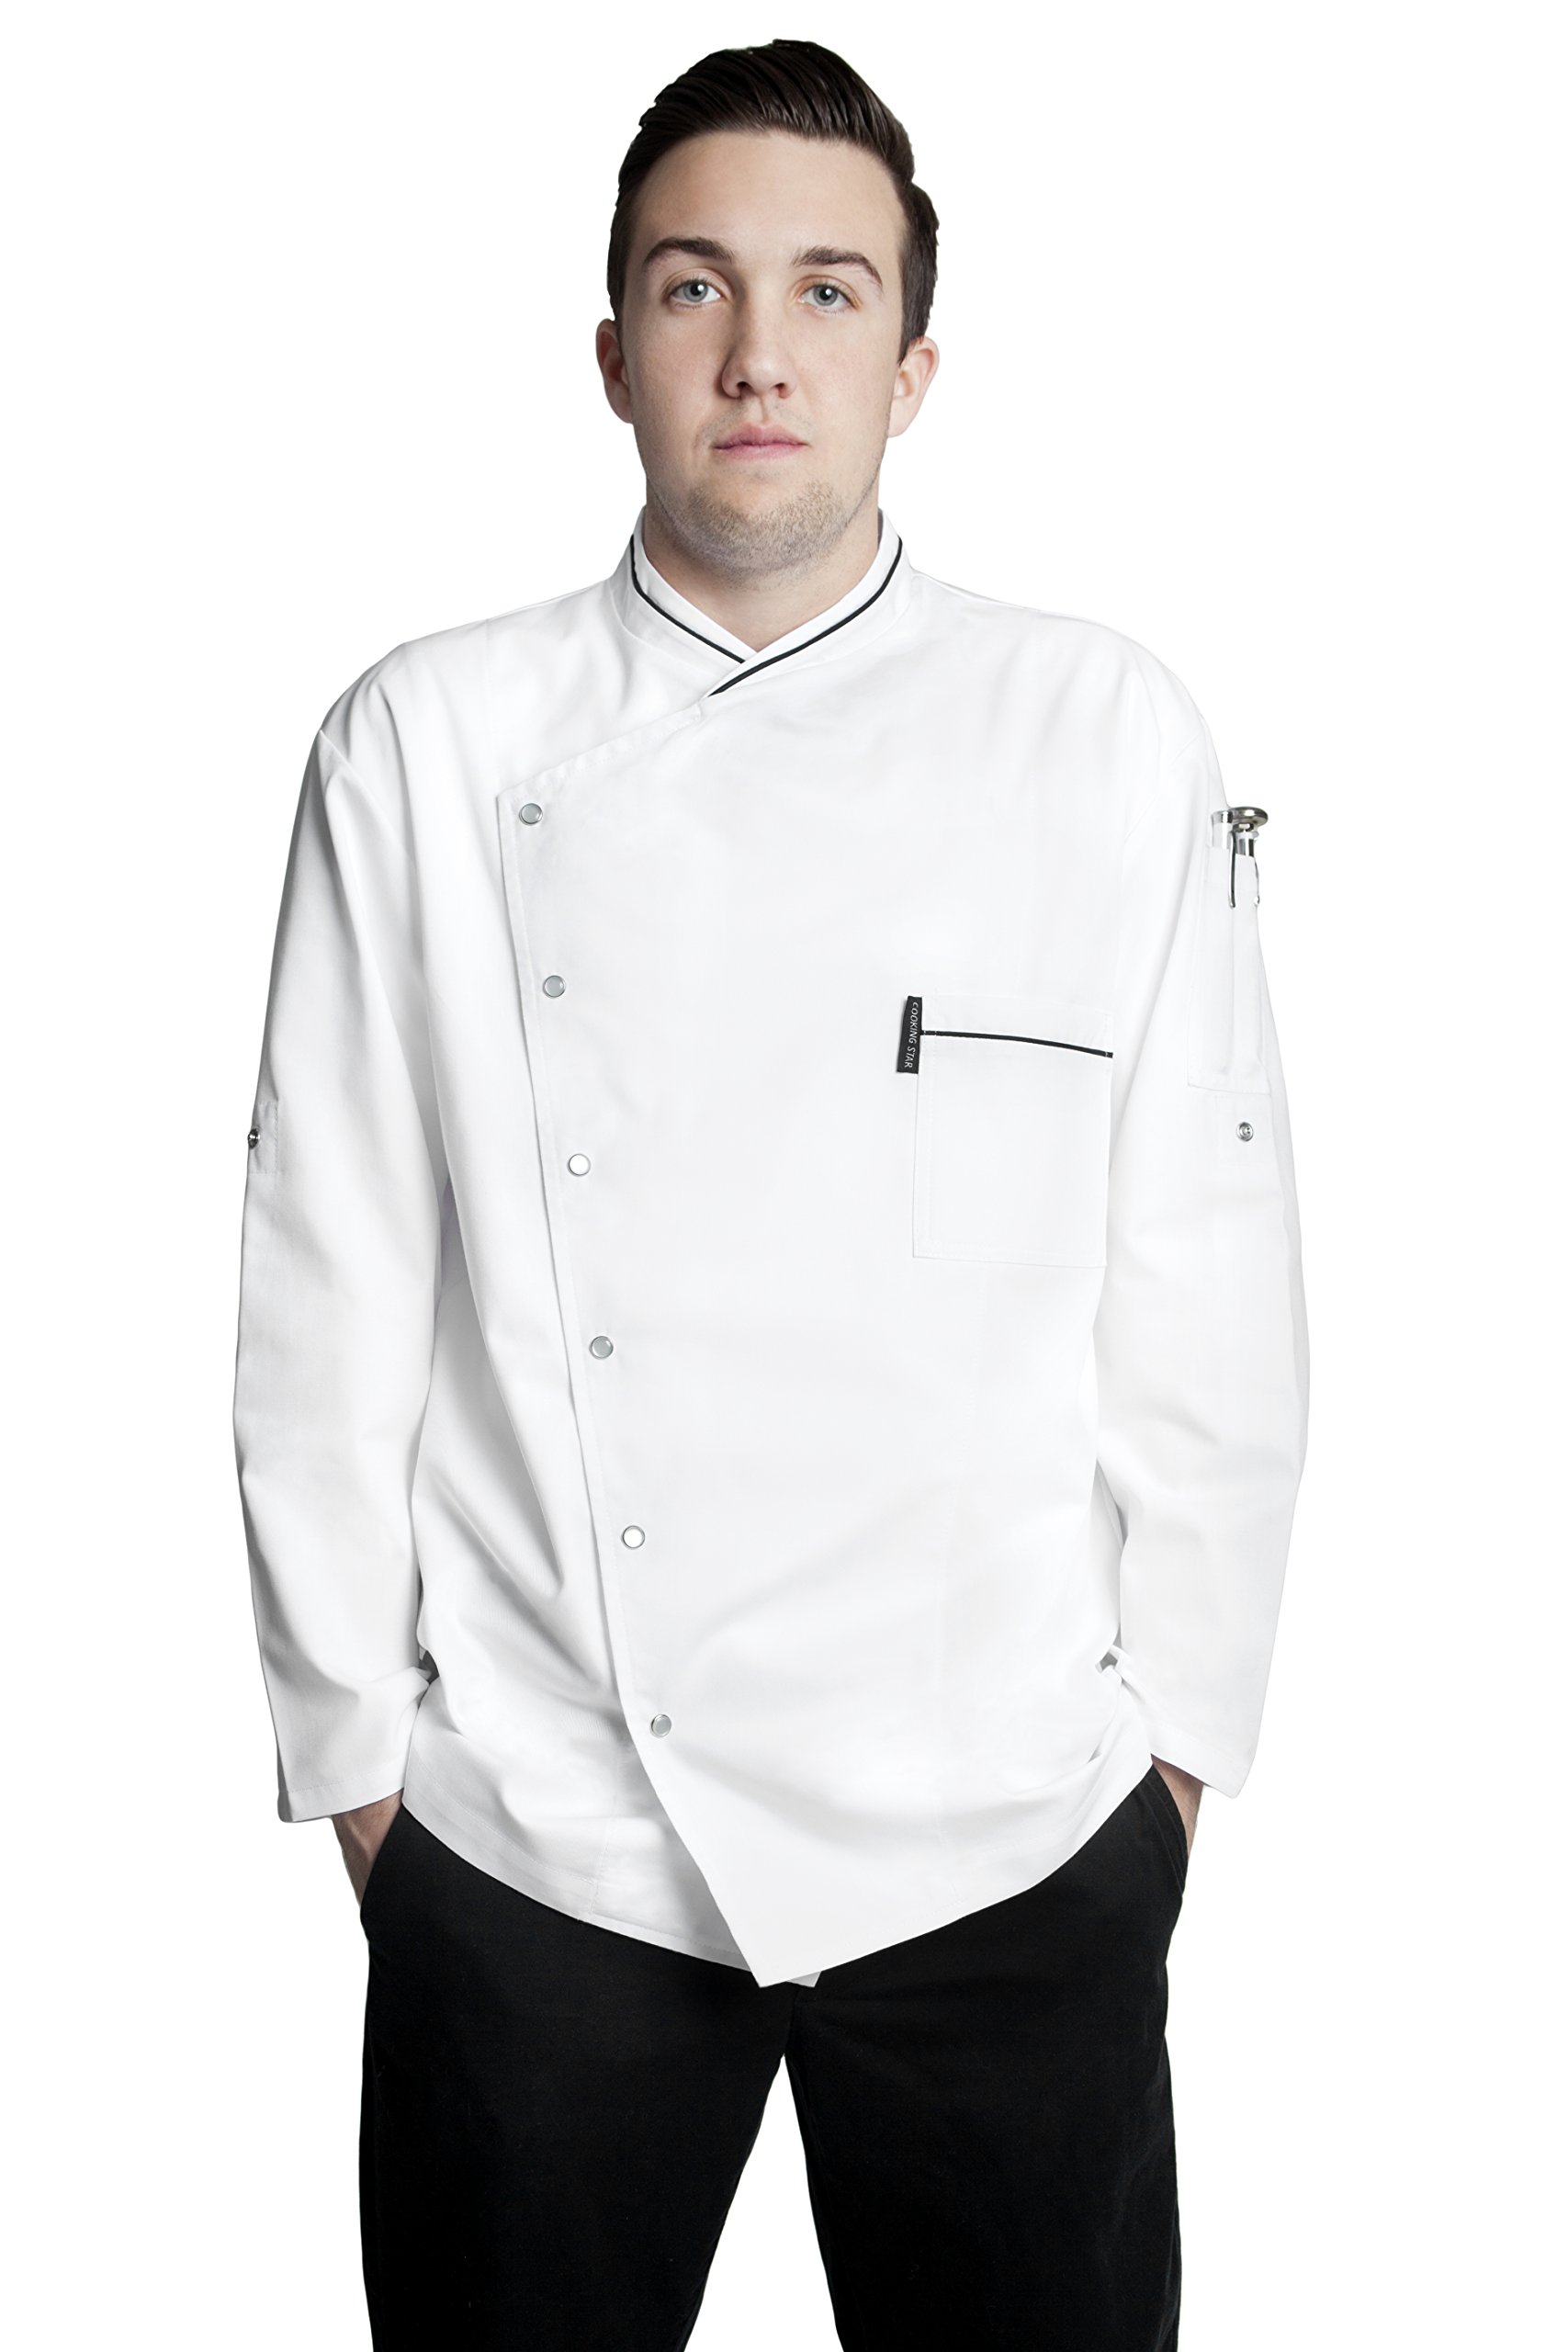 Bragard Men's Chicago Chef Jacket 40 White by Bragard